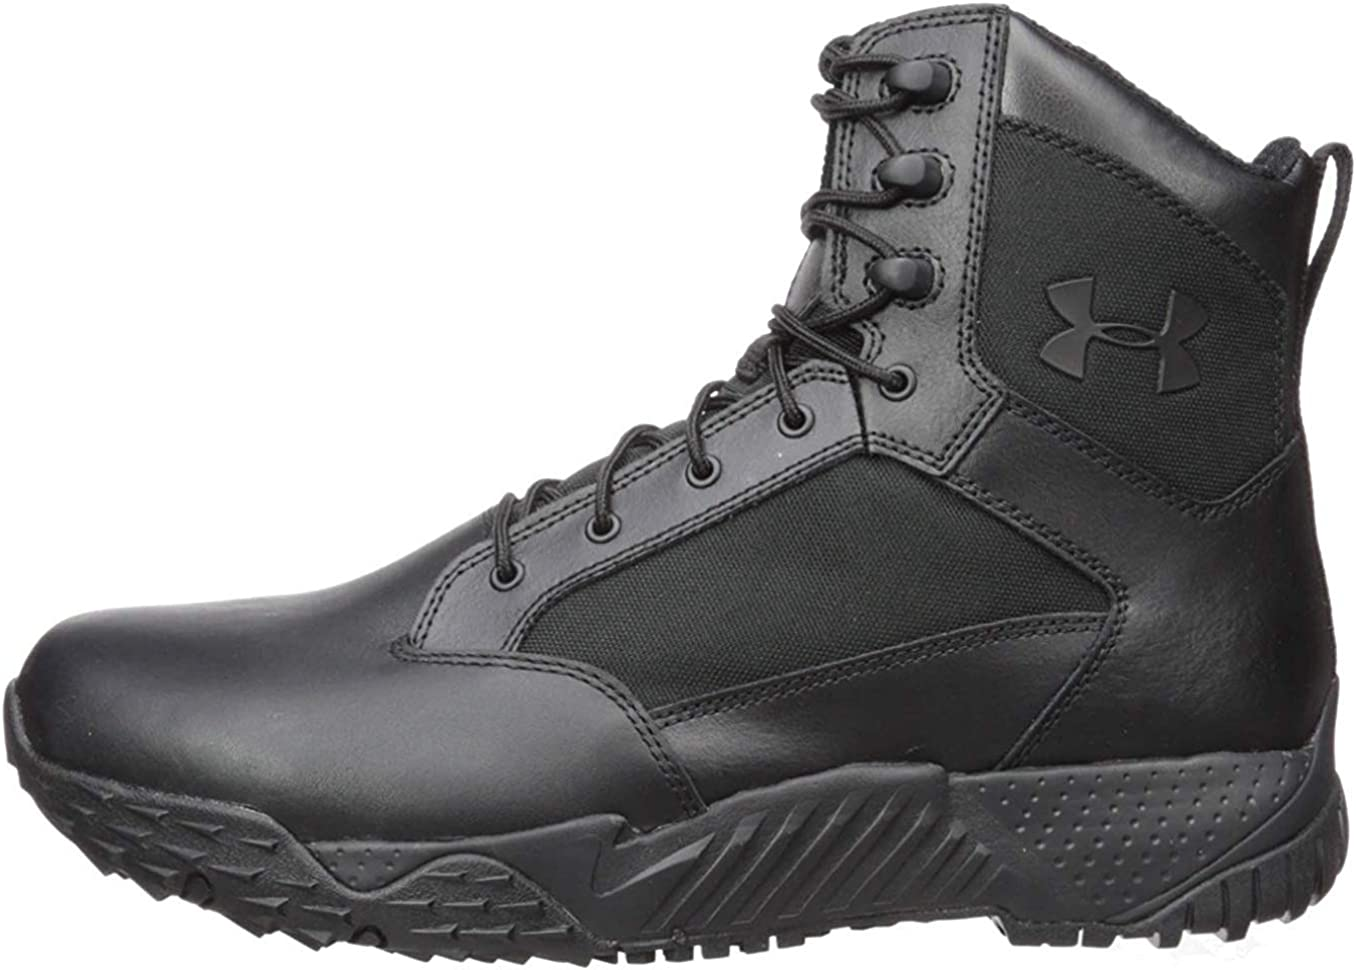 Max 63% OFF Under Armour Max 66% OFF Men's Stellar Tac and Waterproof Tactical Military